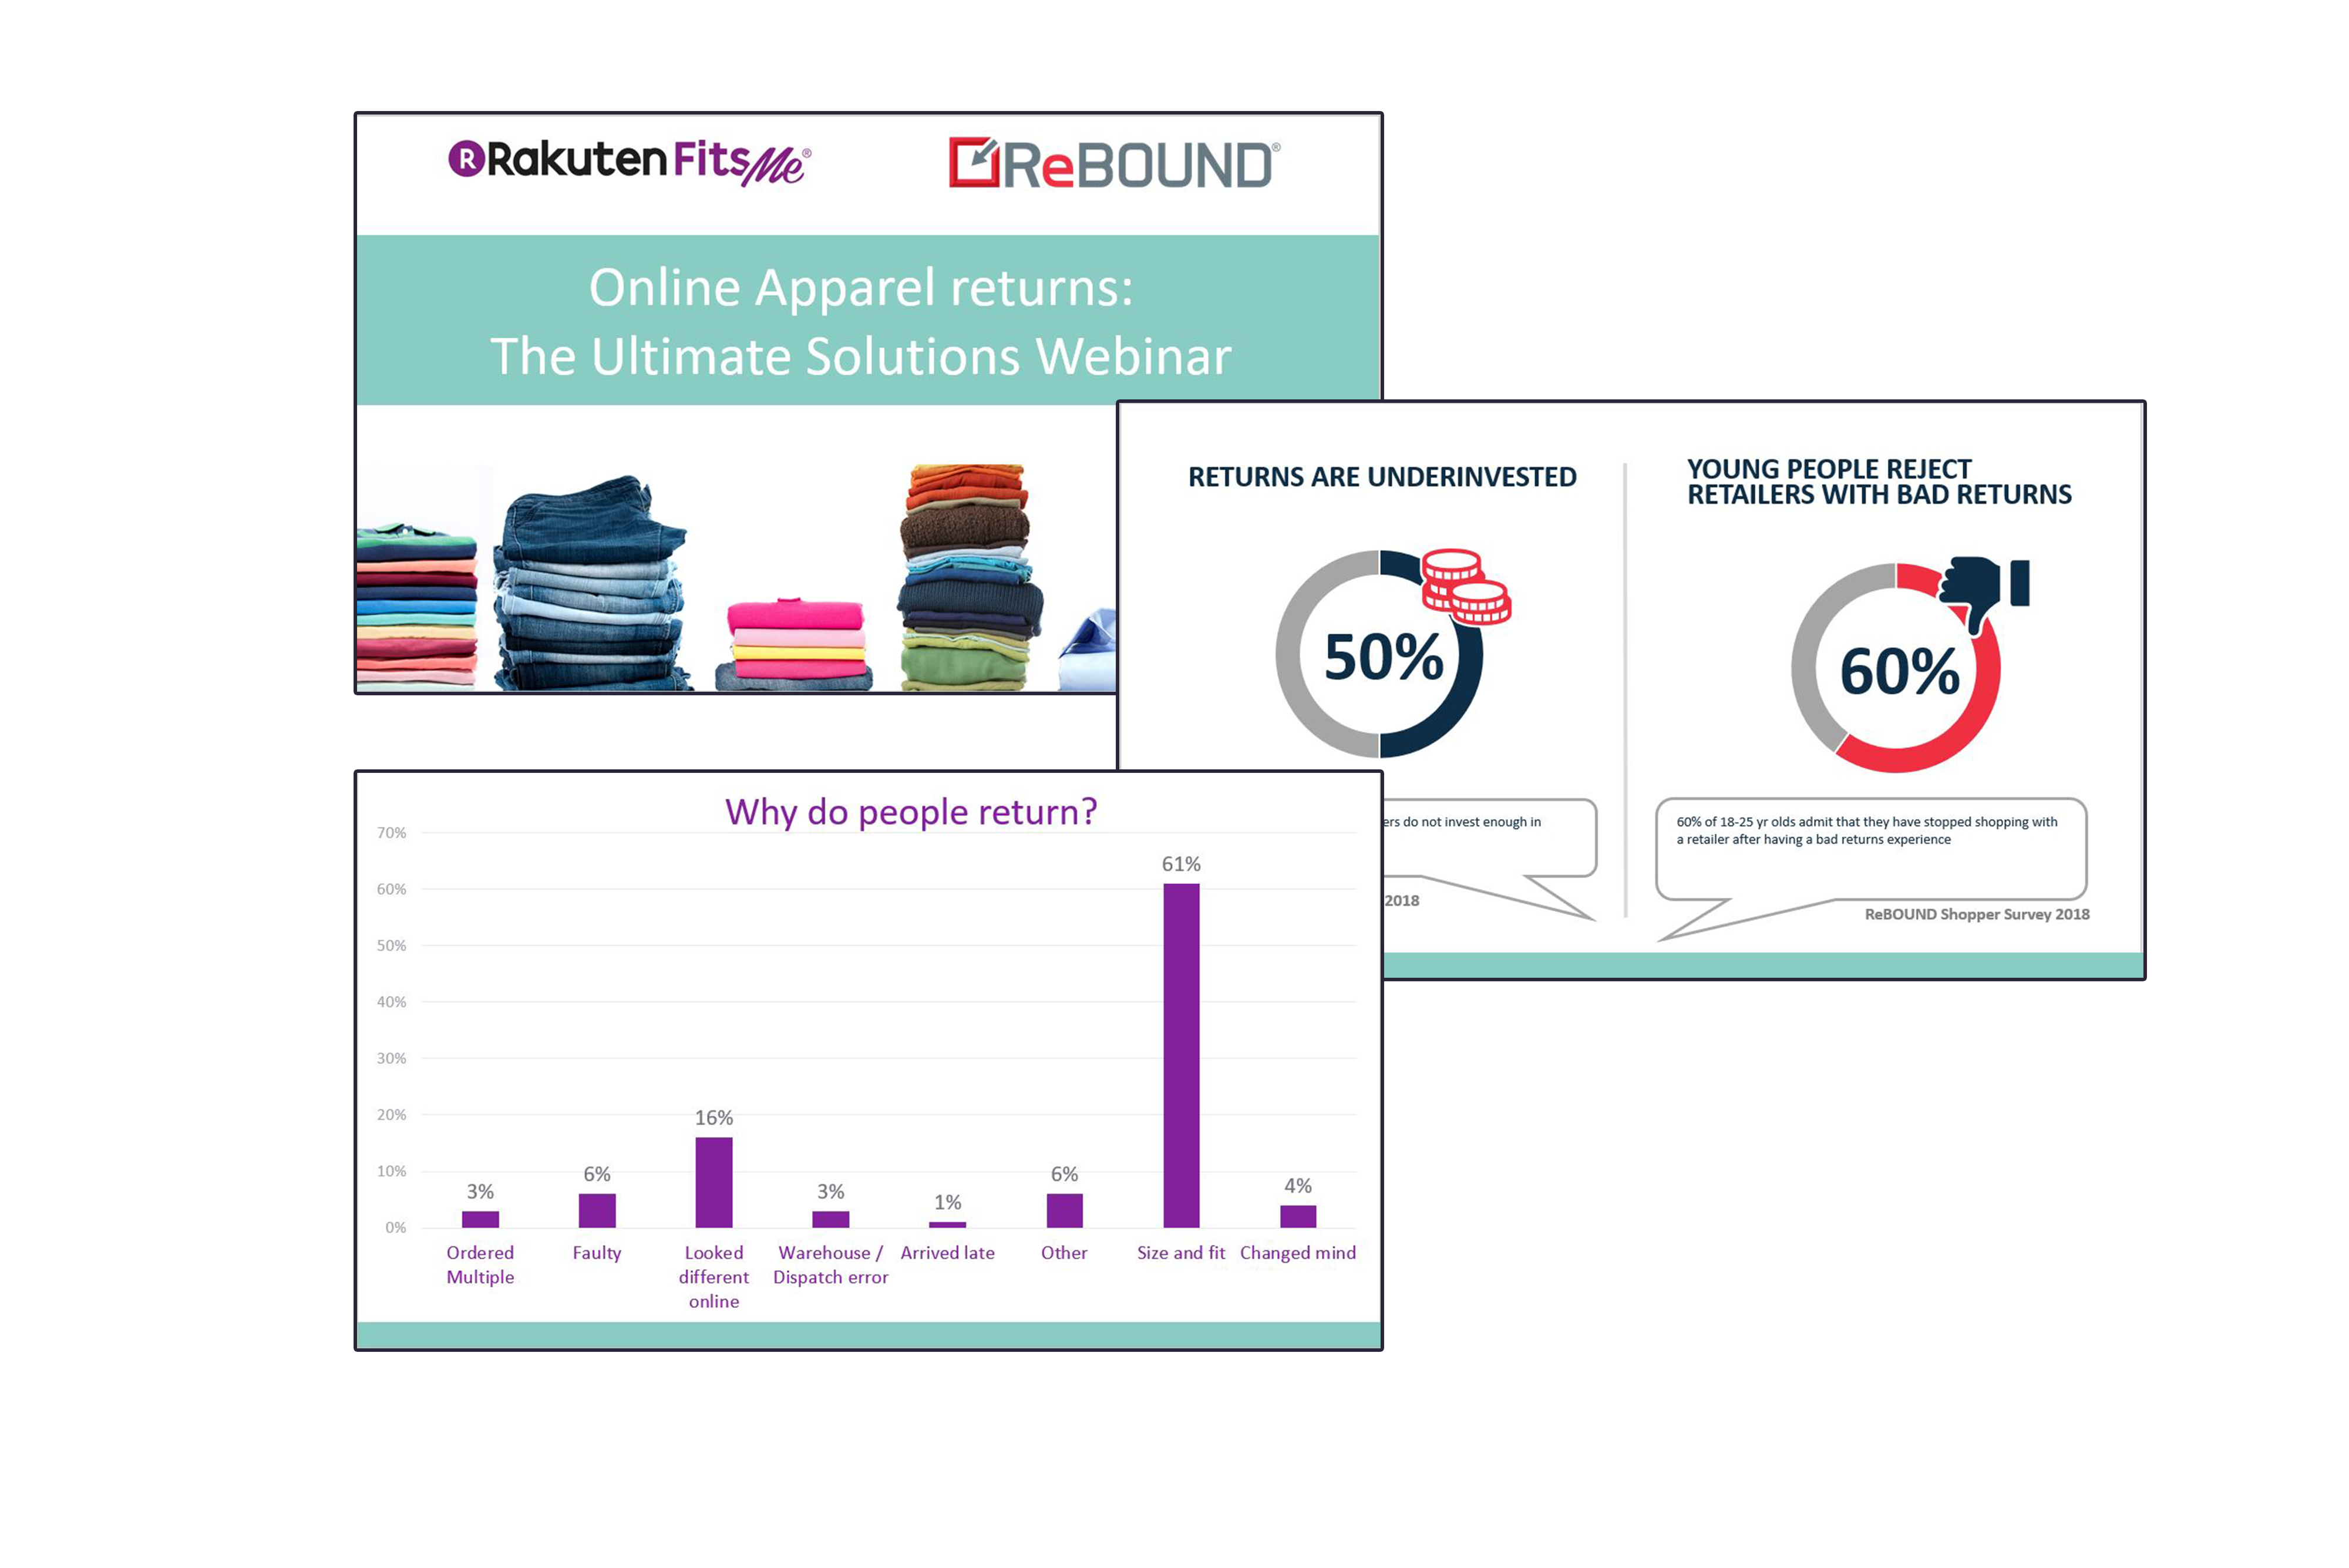 Online Apparel Returns: The Ultimate Solution - The Highlights